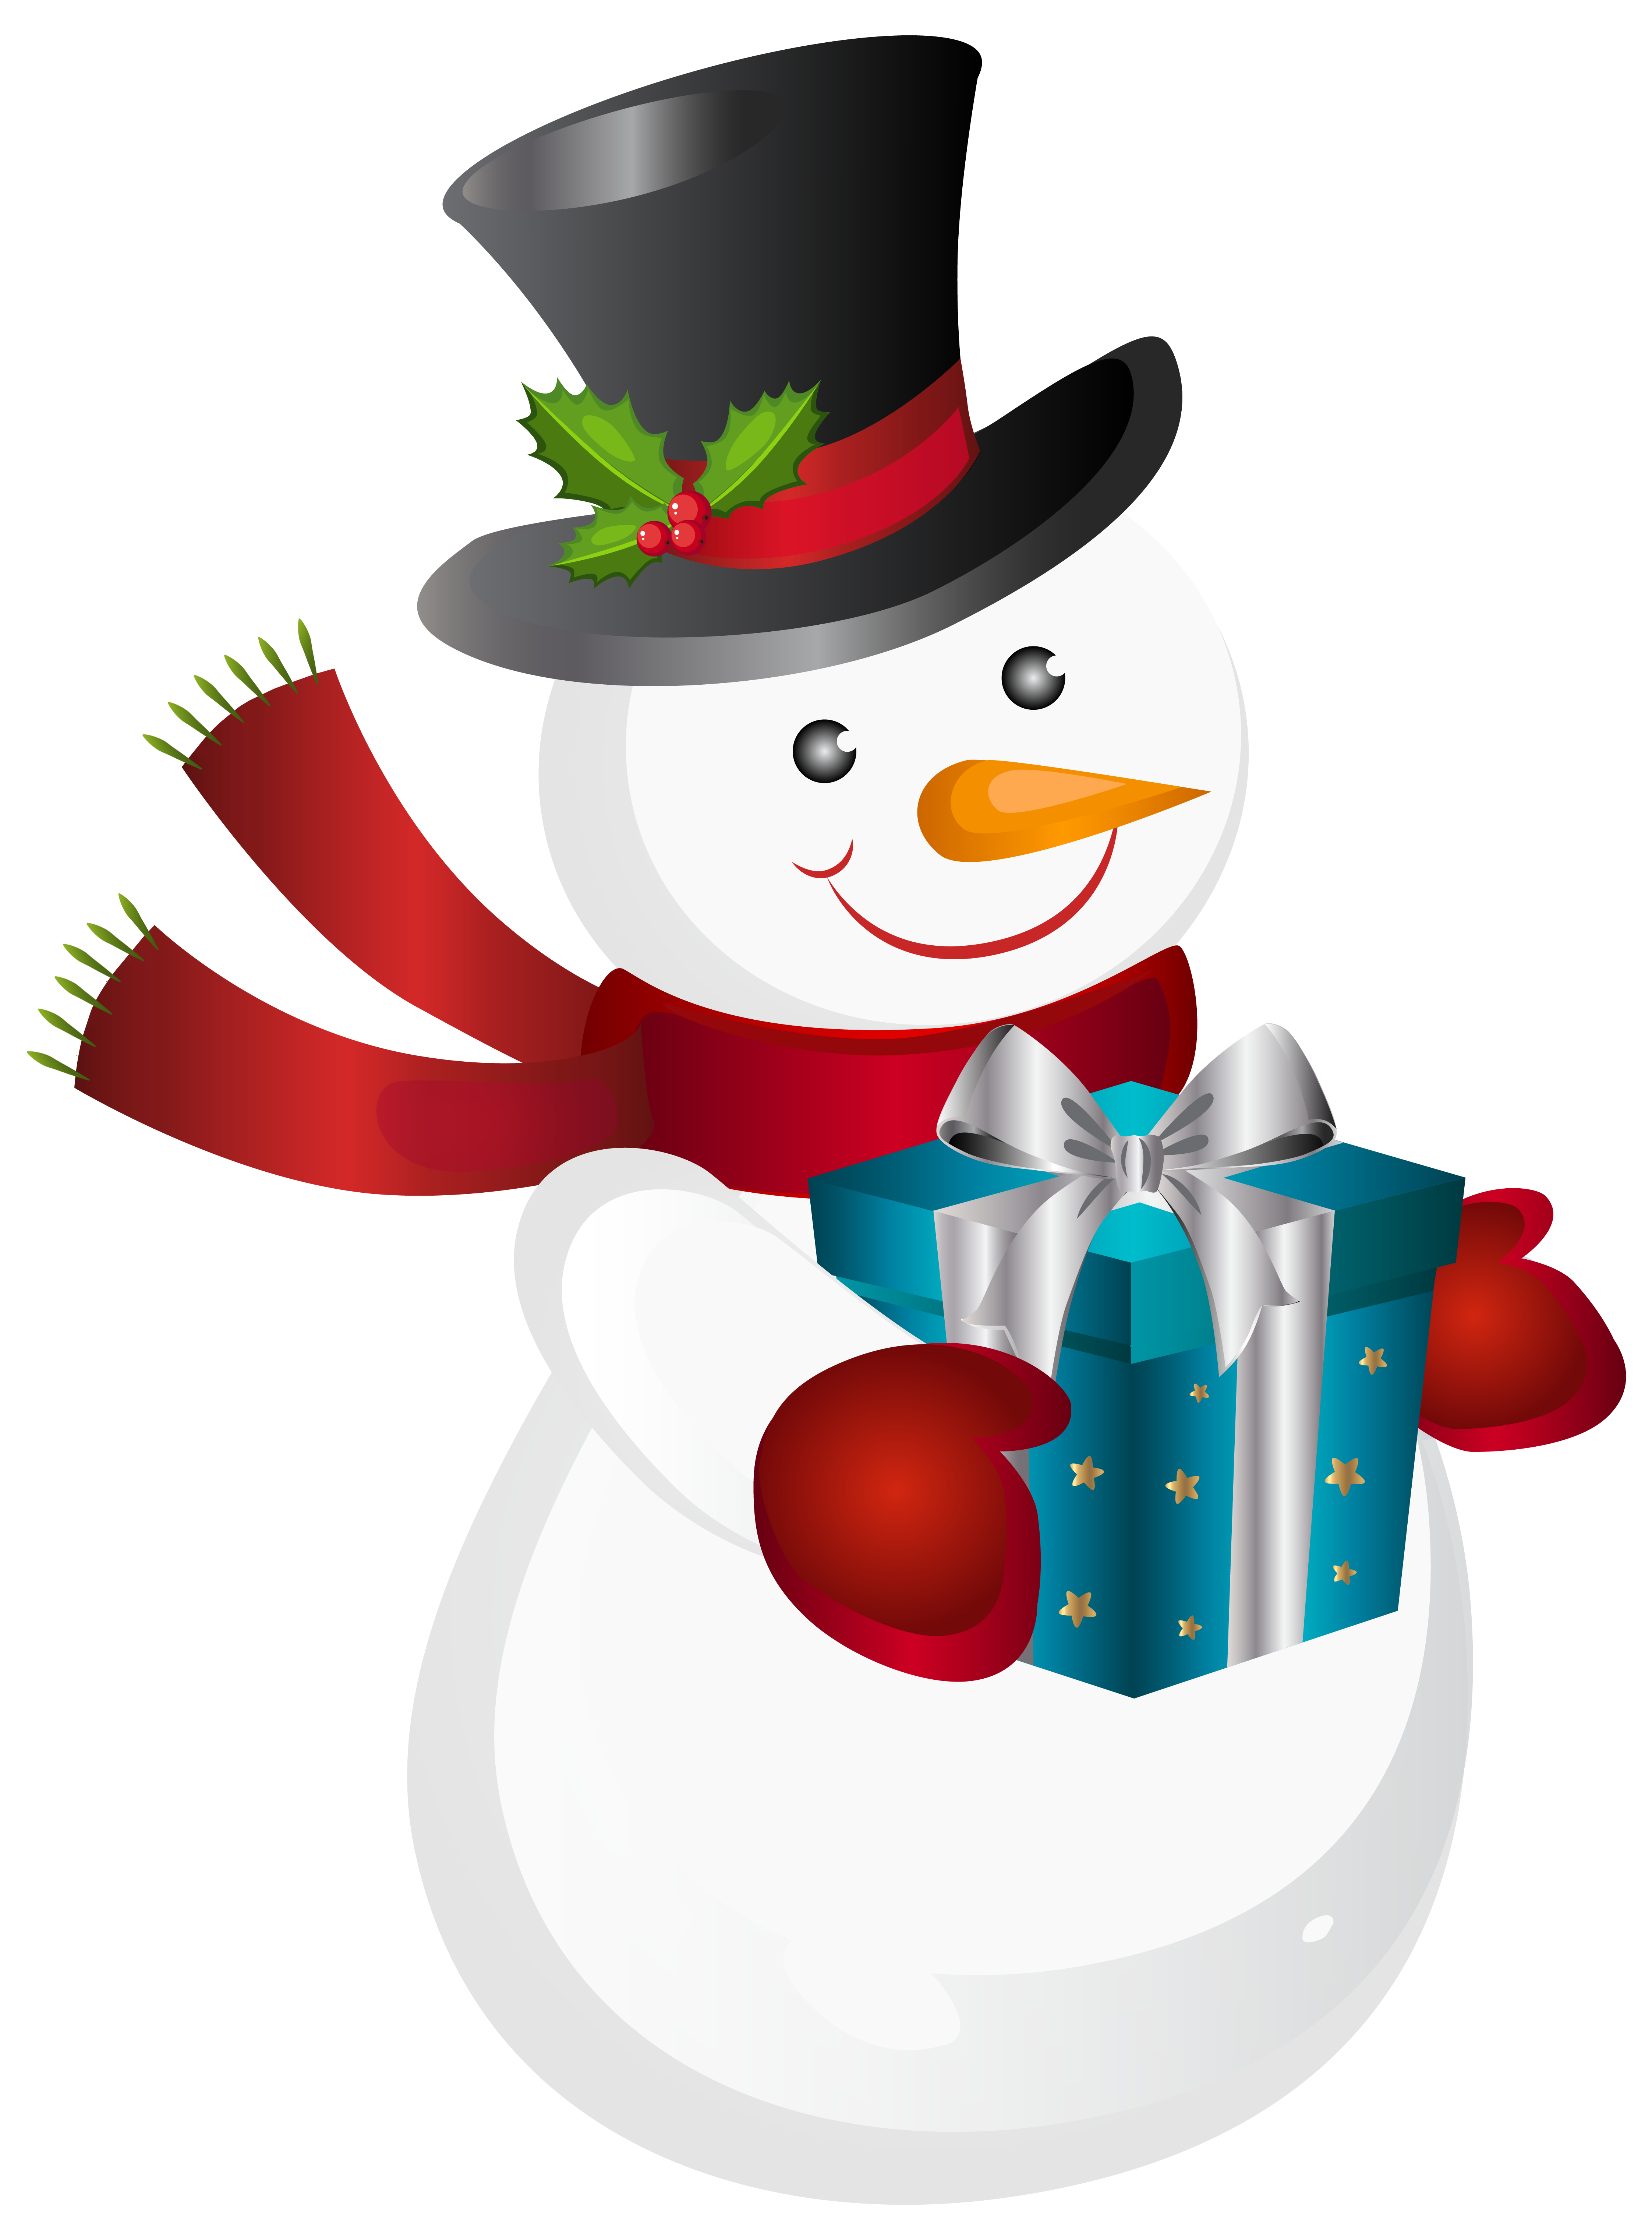 Snowman heart clipart royalty free stock Christmas Snowman Transparent PNG Clip Art Image | Gallery ... royalty free stock